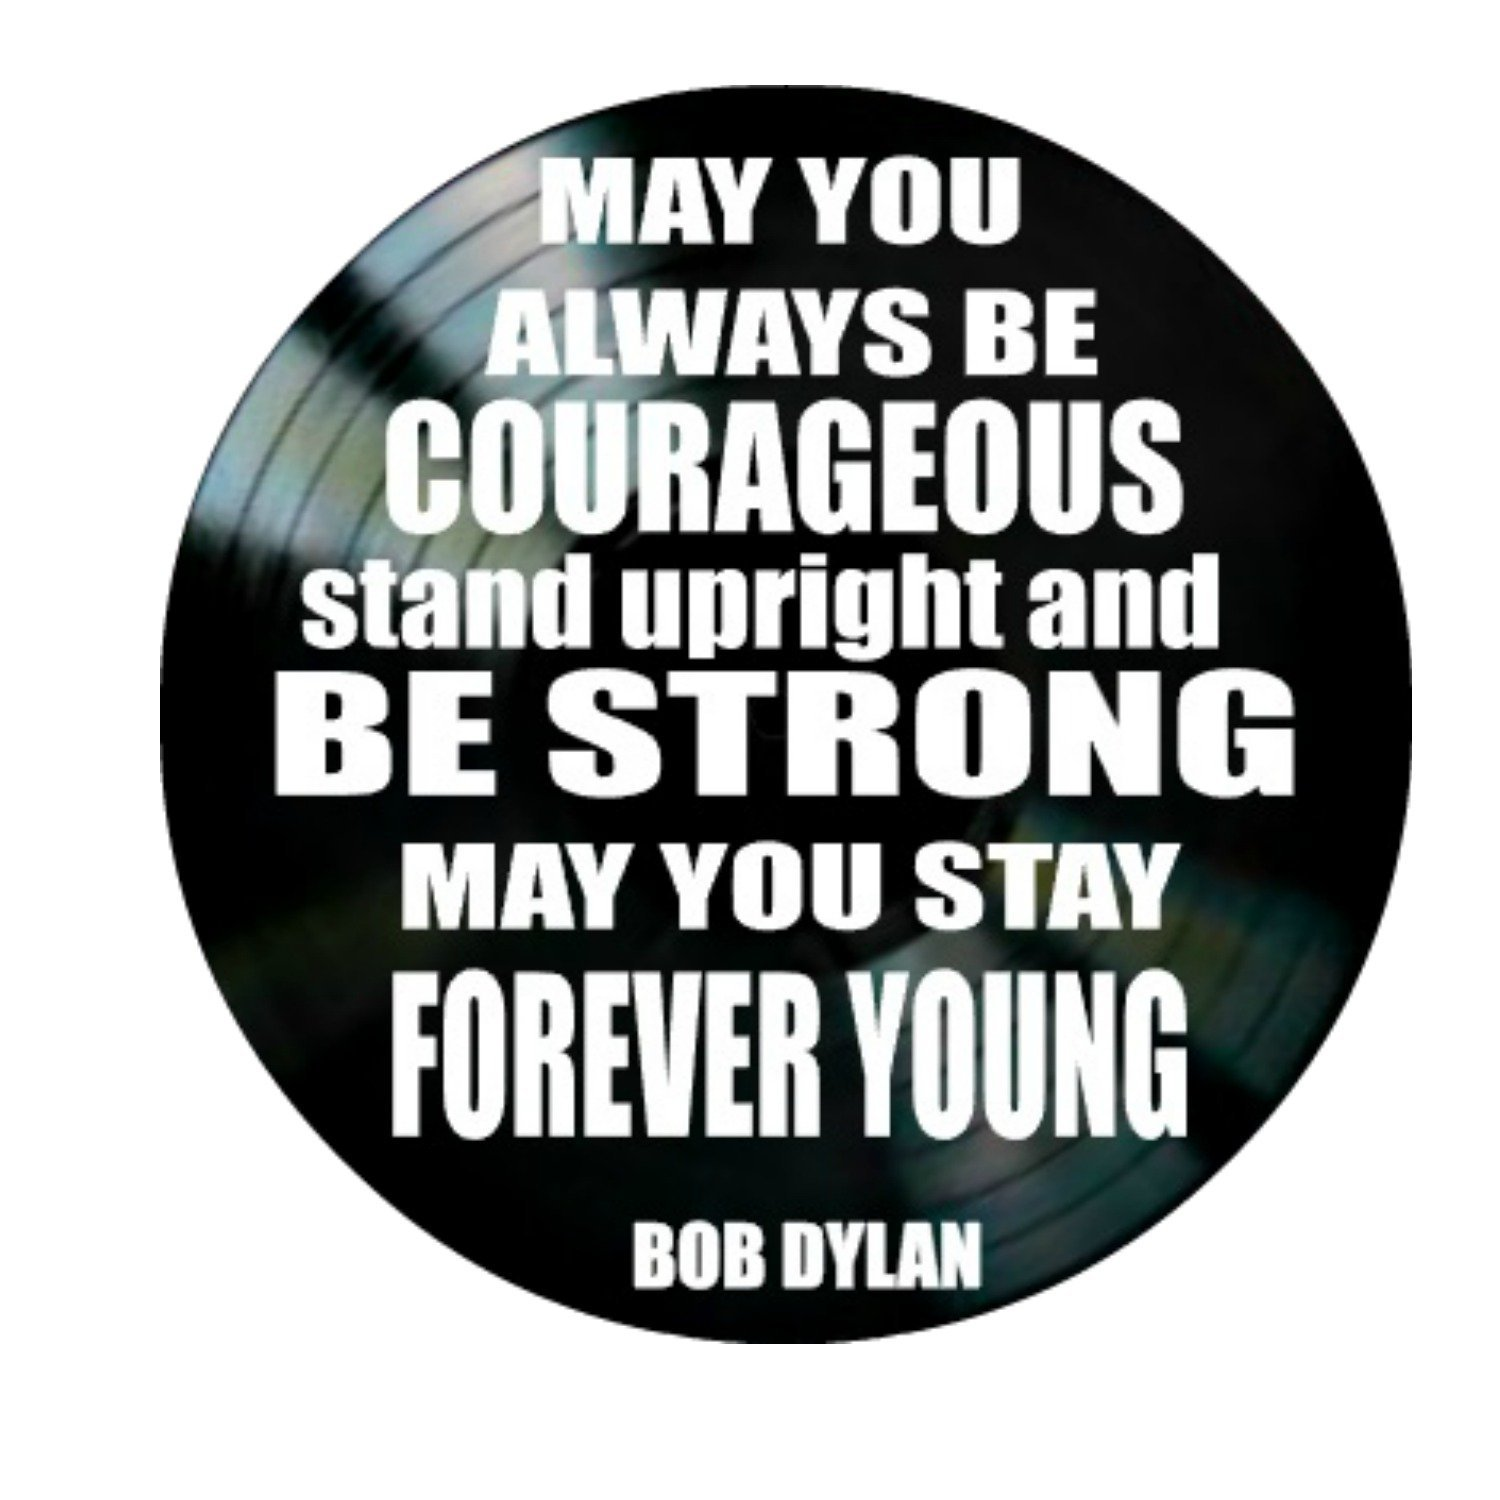 Forever Young song lyrics by Bob Dylan on a Vinyl Record Wall Decor